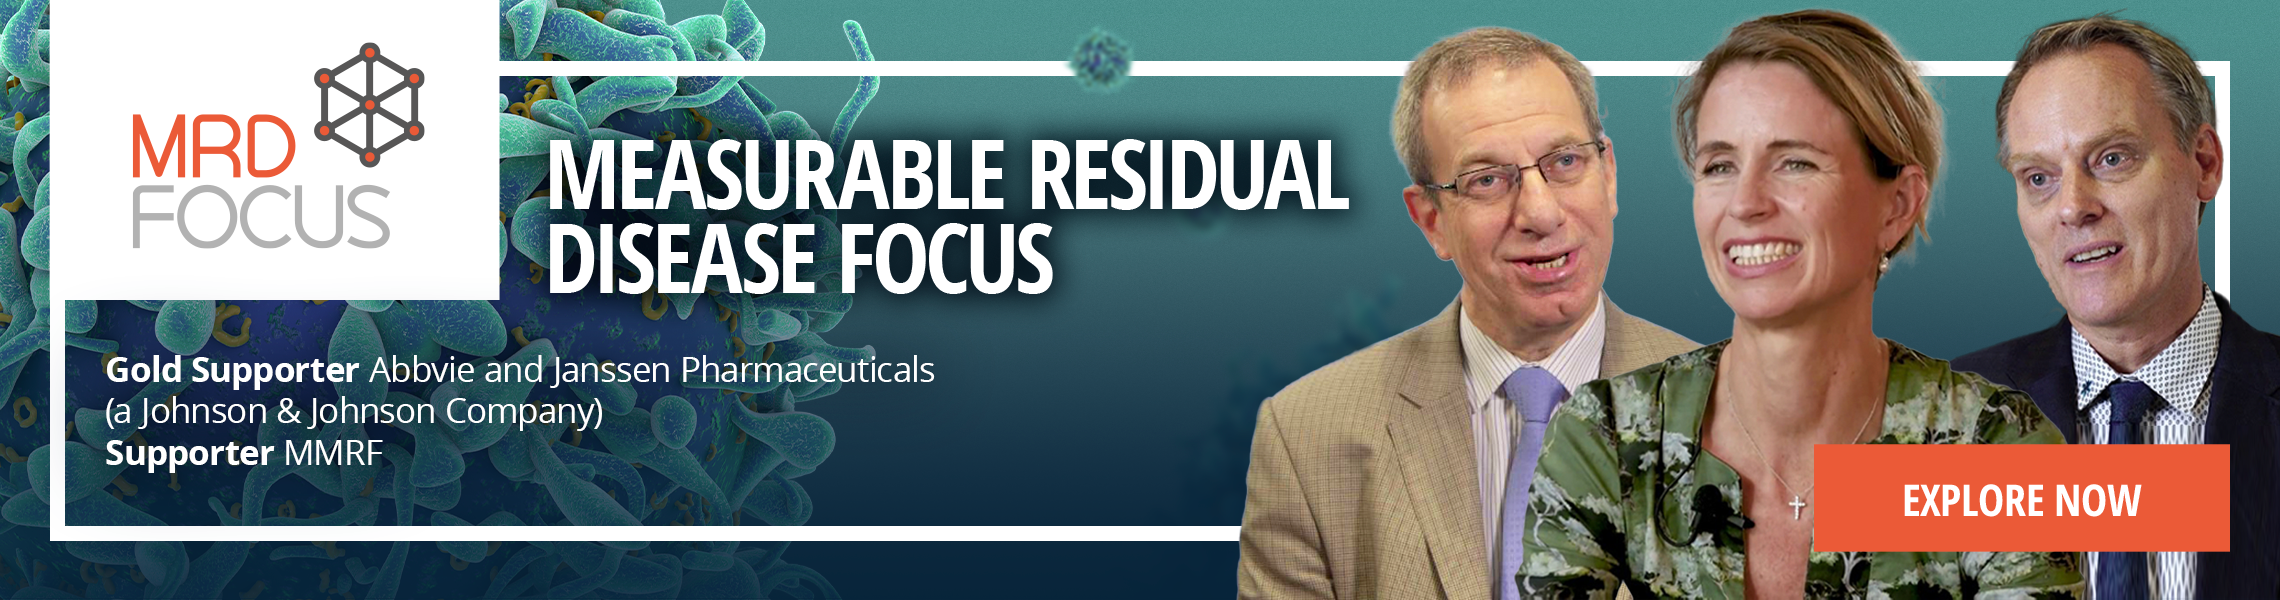 Watch the Measurable Residual Disease Focus Channel